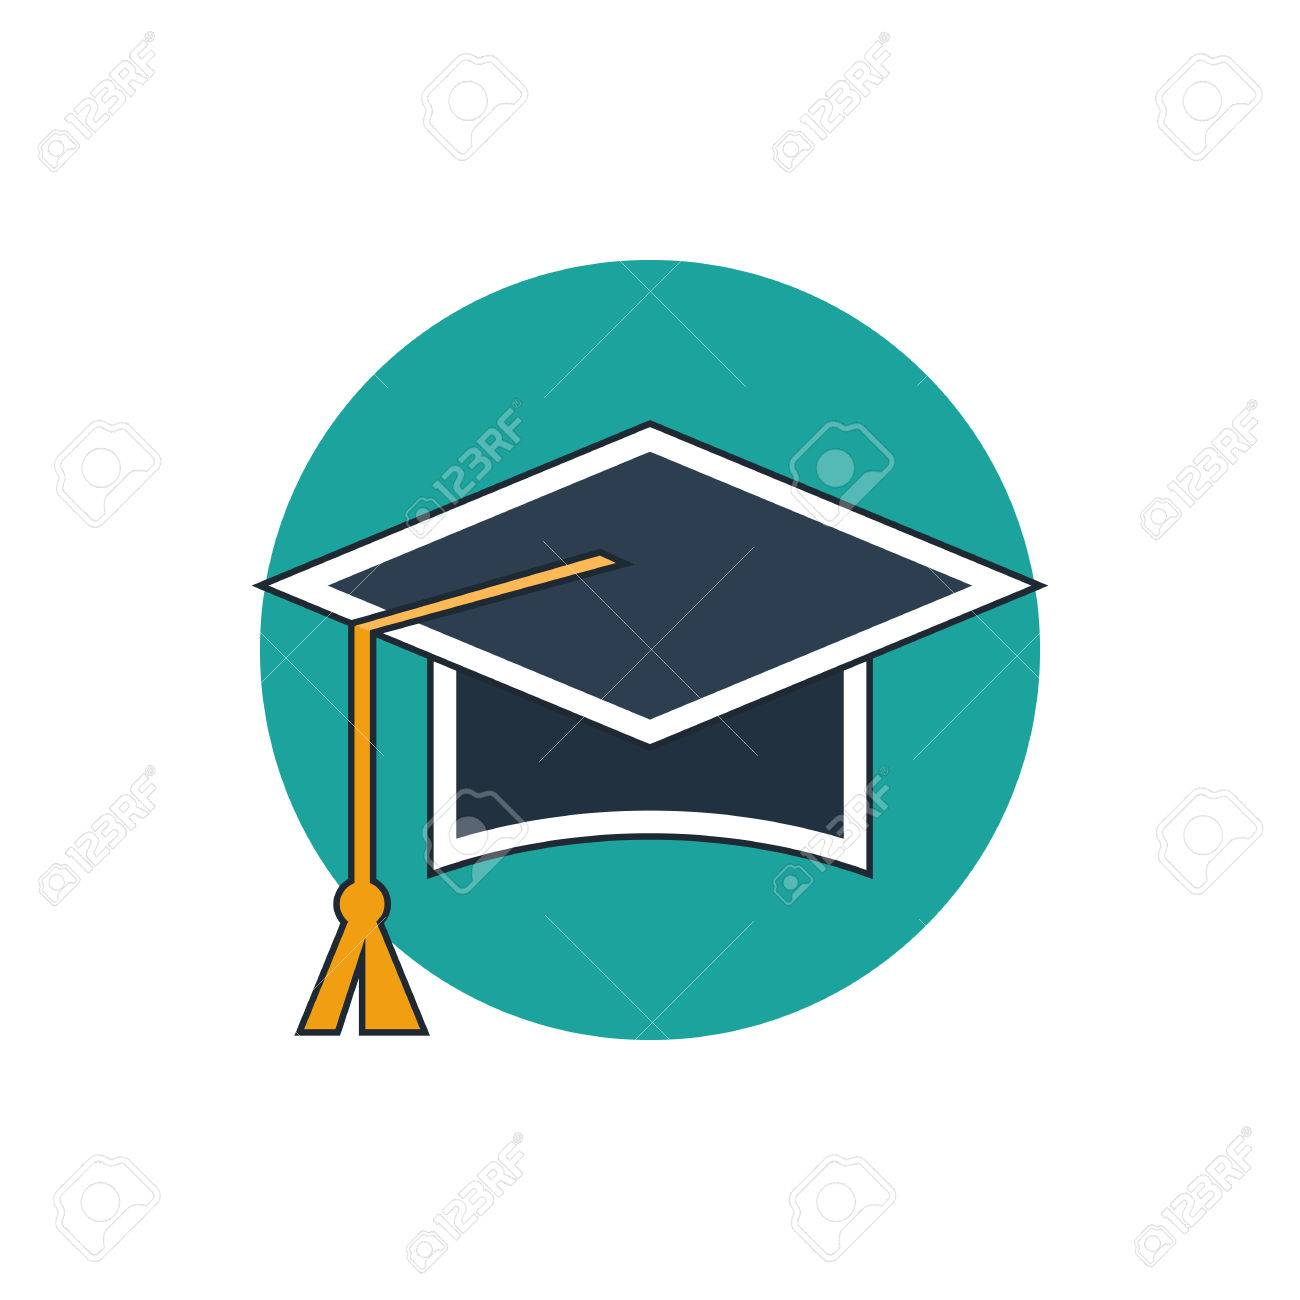 education icon royalty free cliparts vectors and stock